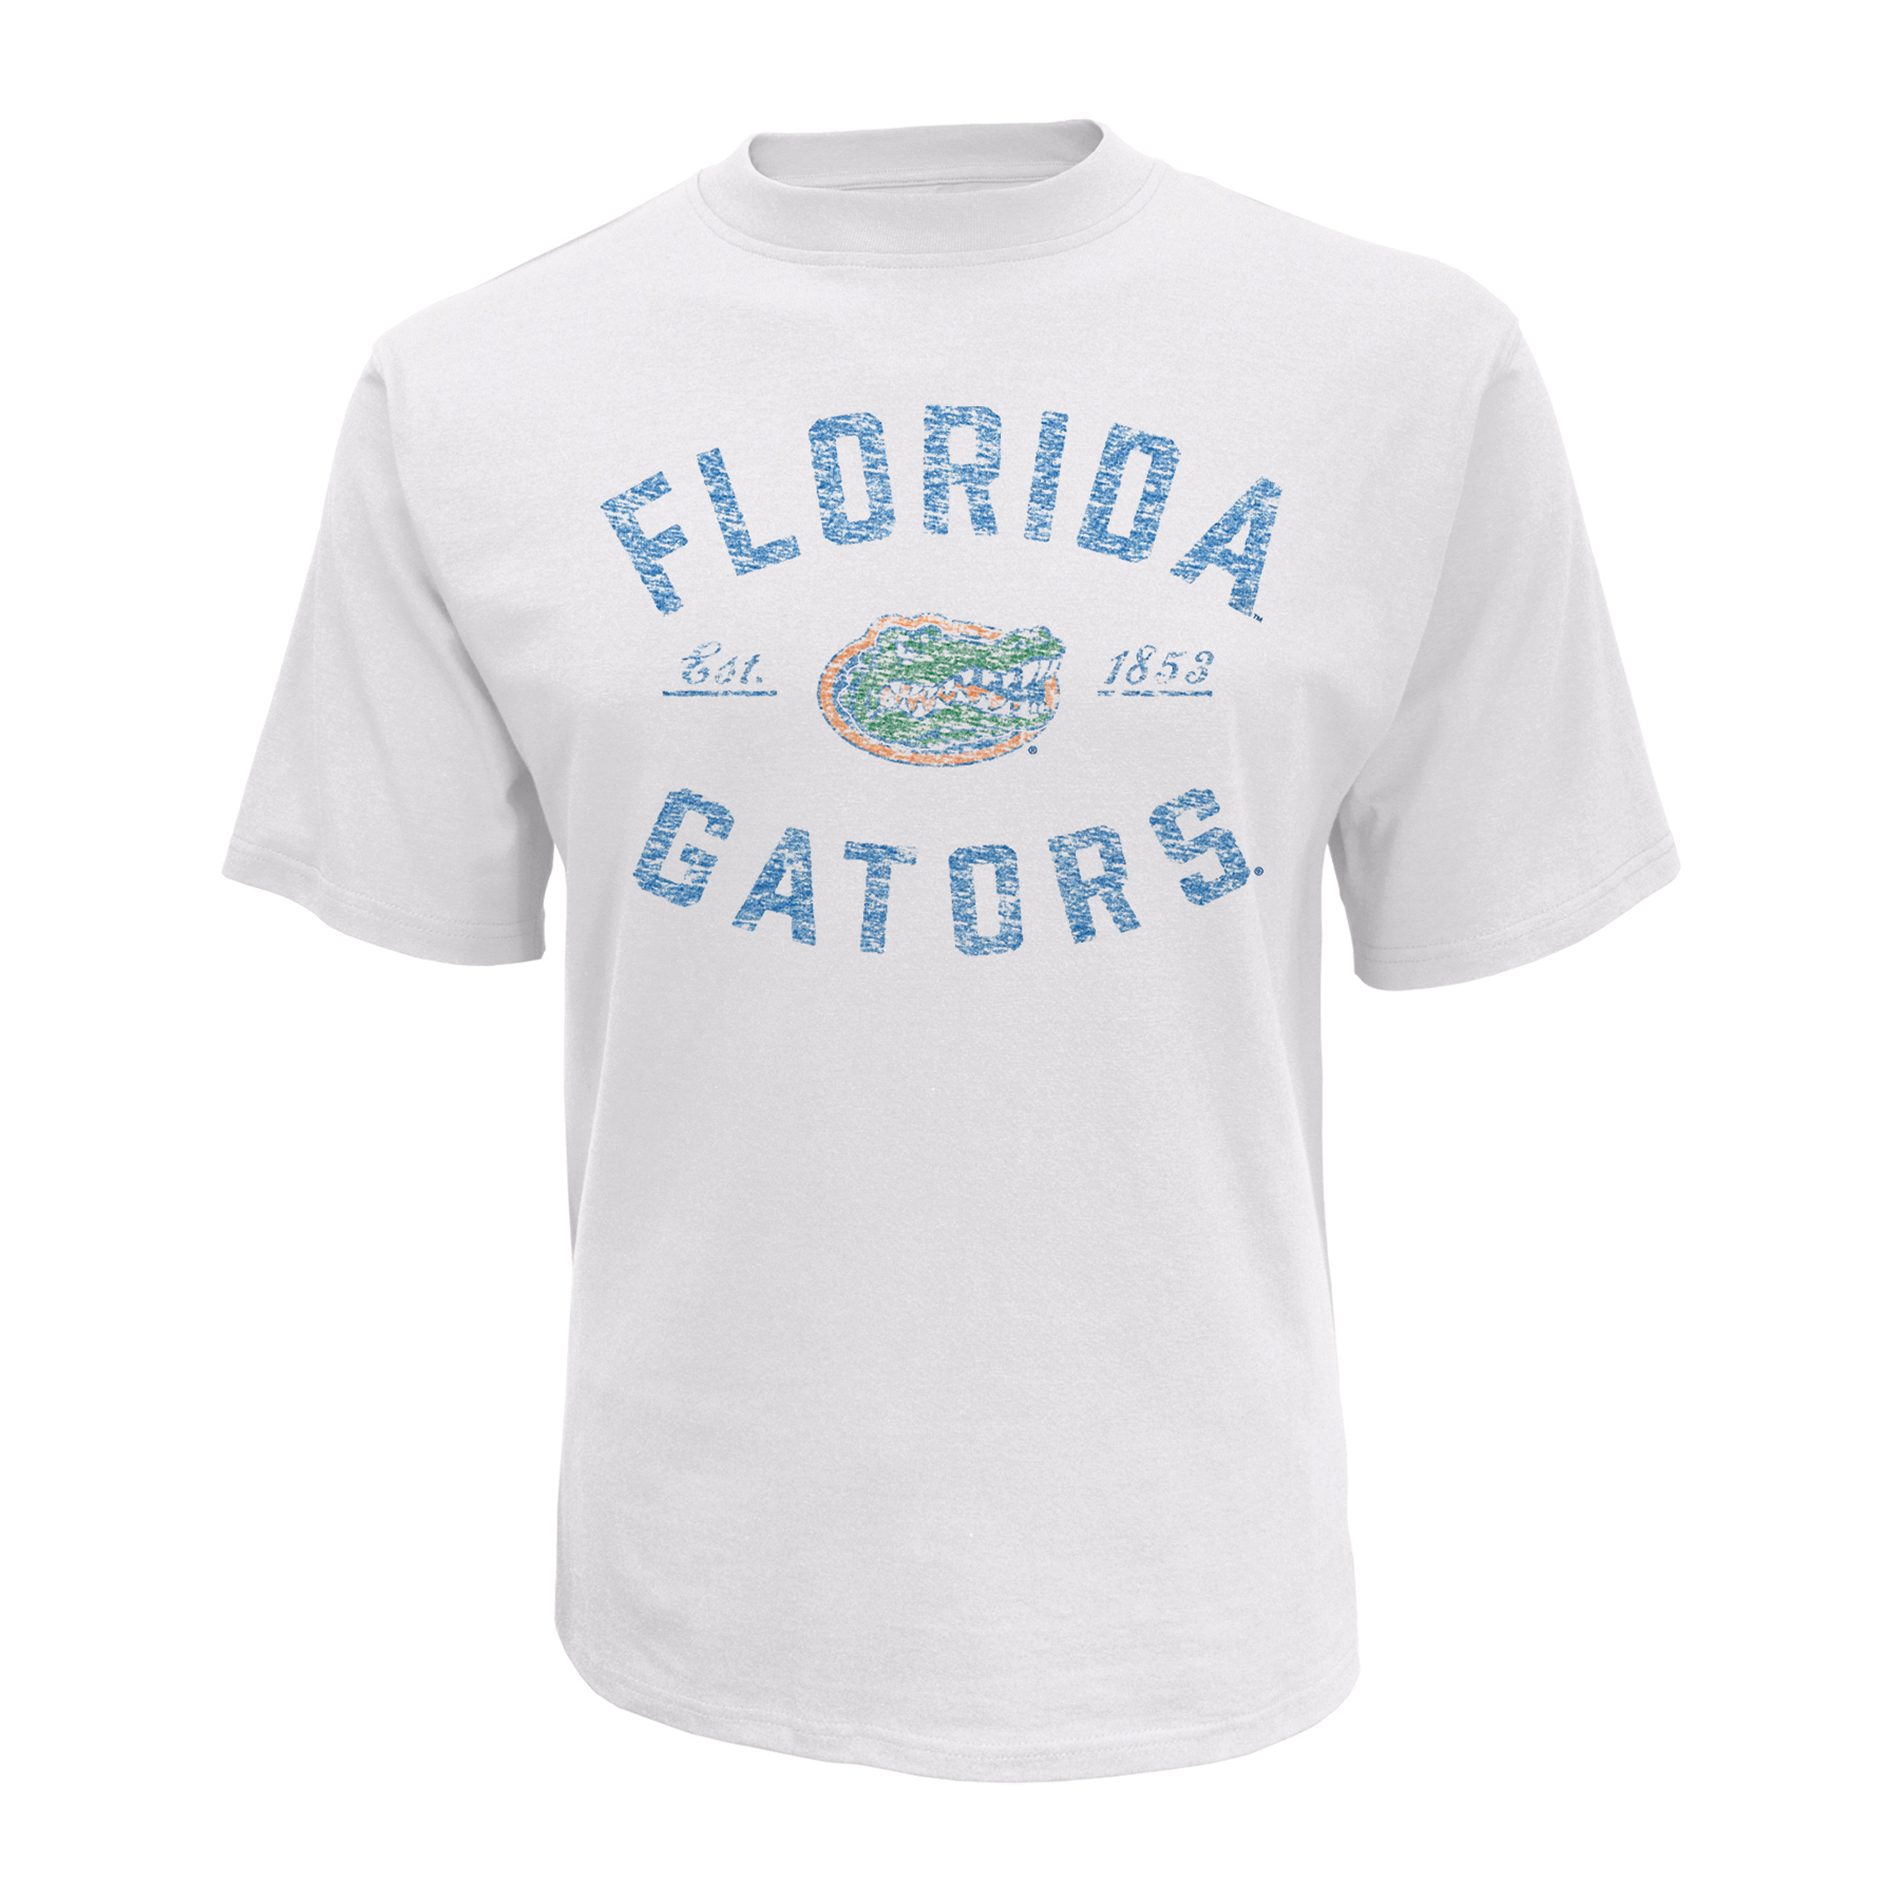 petite NCAA Men's Big & Tall Short-Sleeve T-Shirt - Florida Gators, Size: 4XL